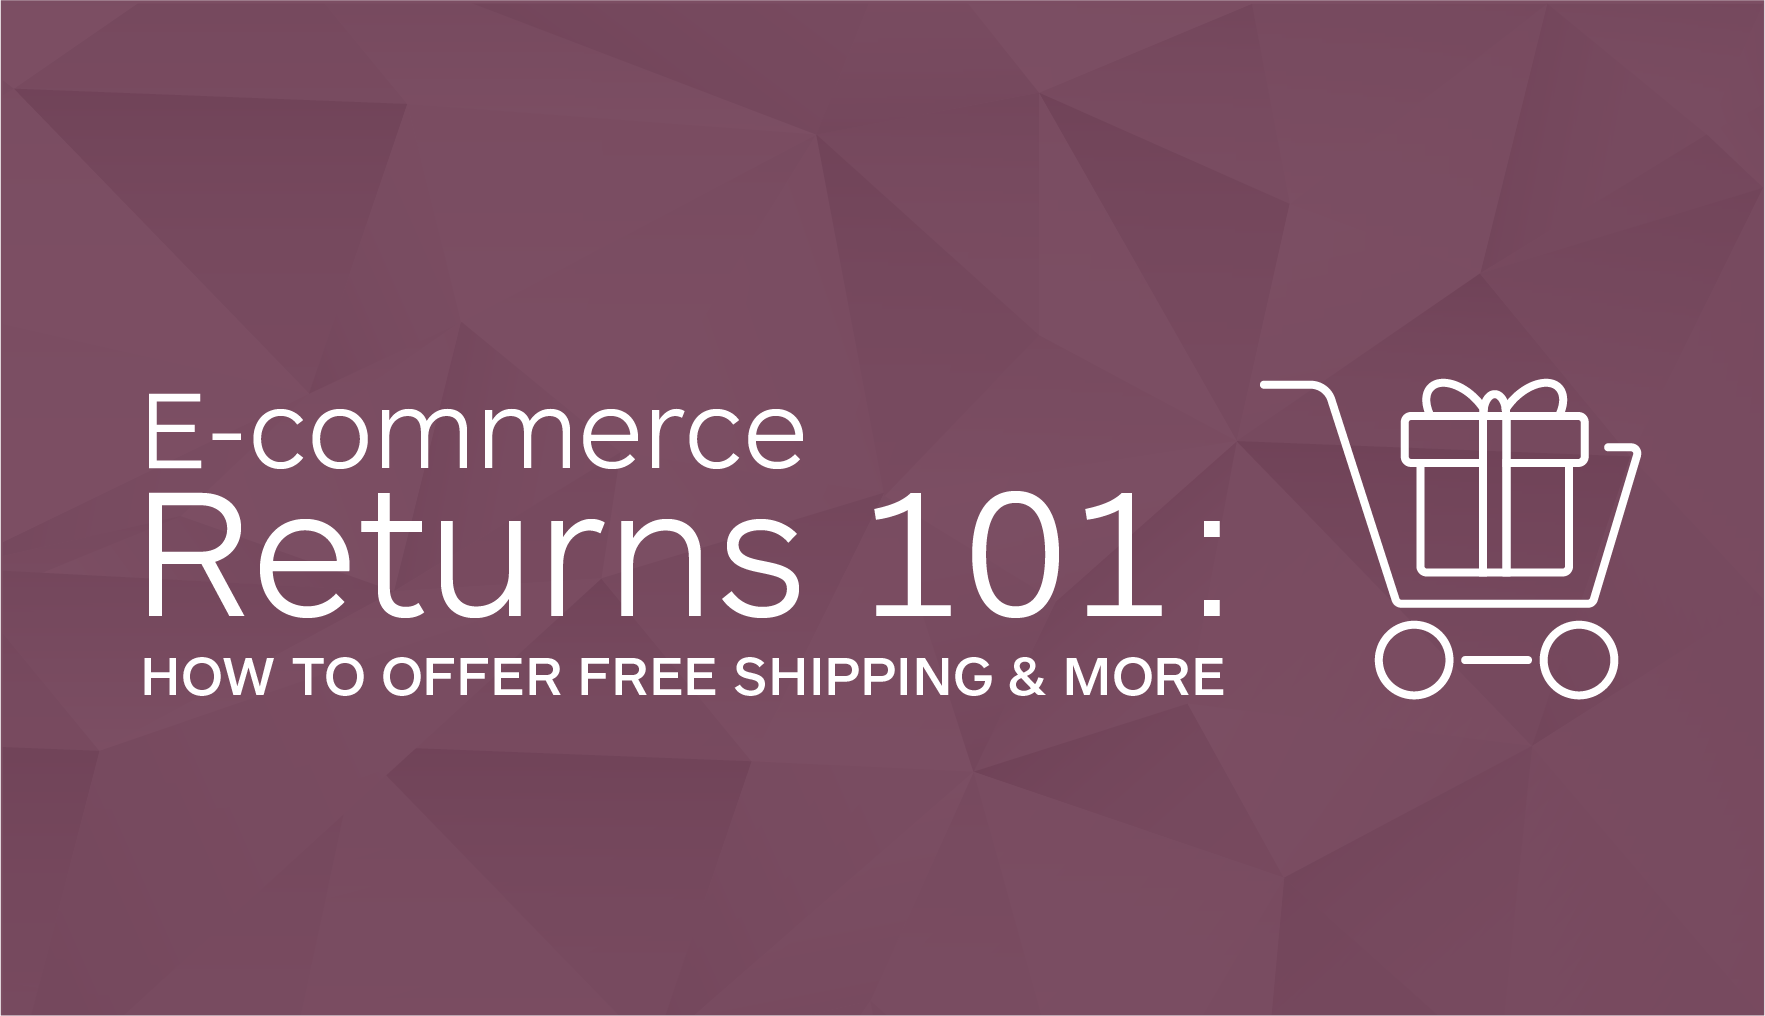 E-commerce Returns 101: How to Offer Free Shipping